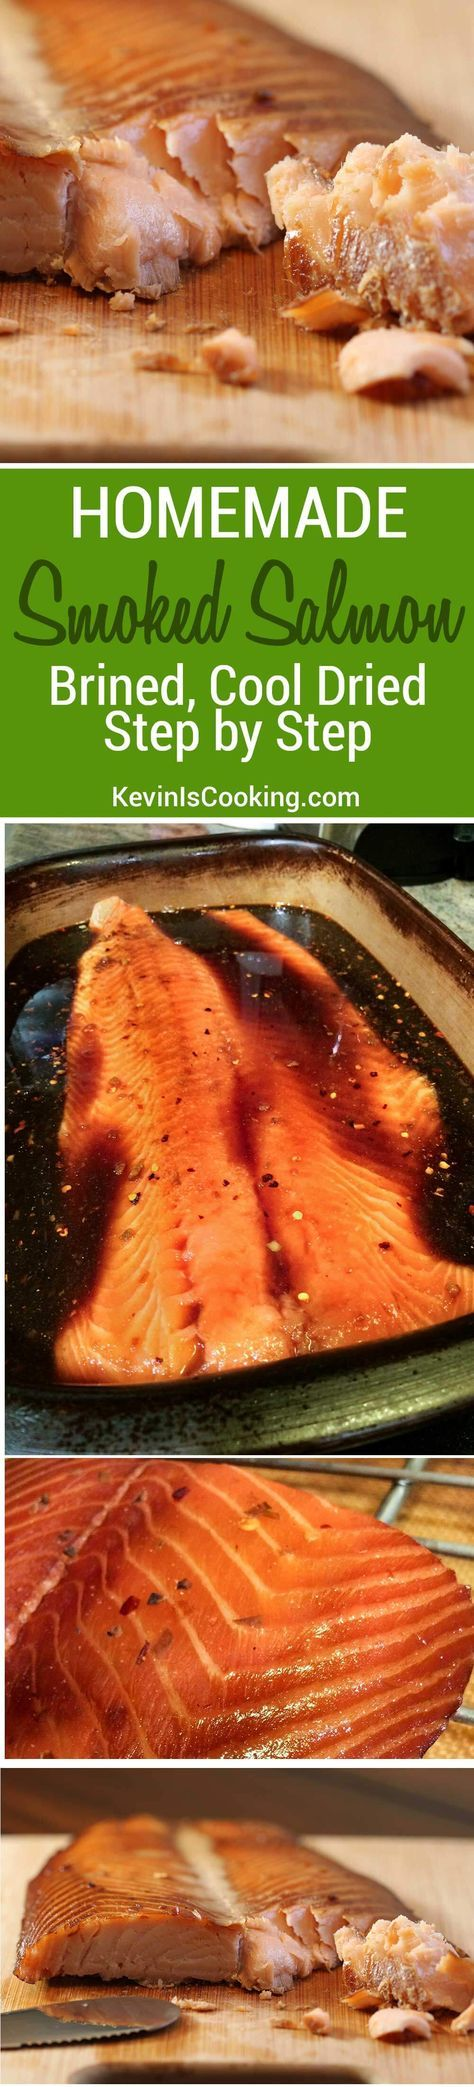 A Great Step By Step Recipe On How To Make Smoked Salmon And Brine You